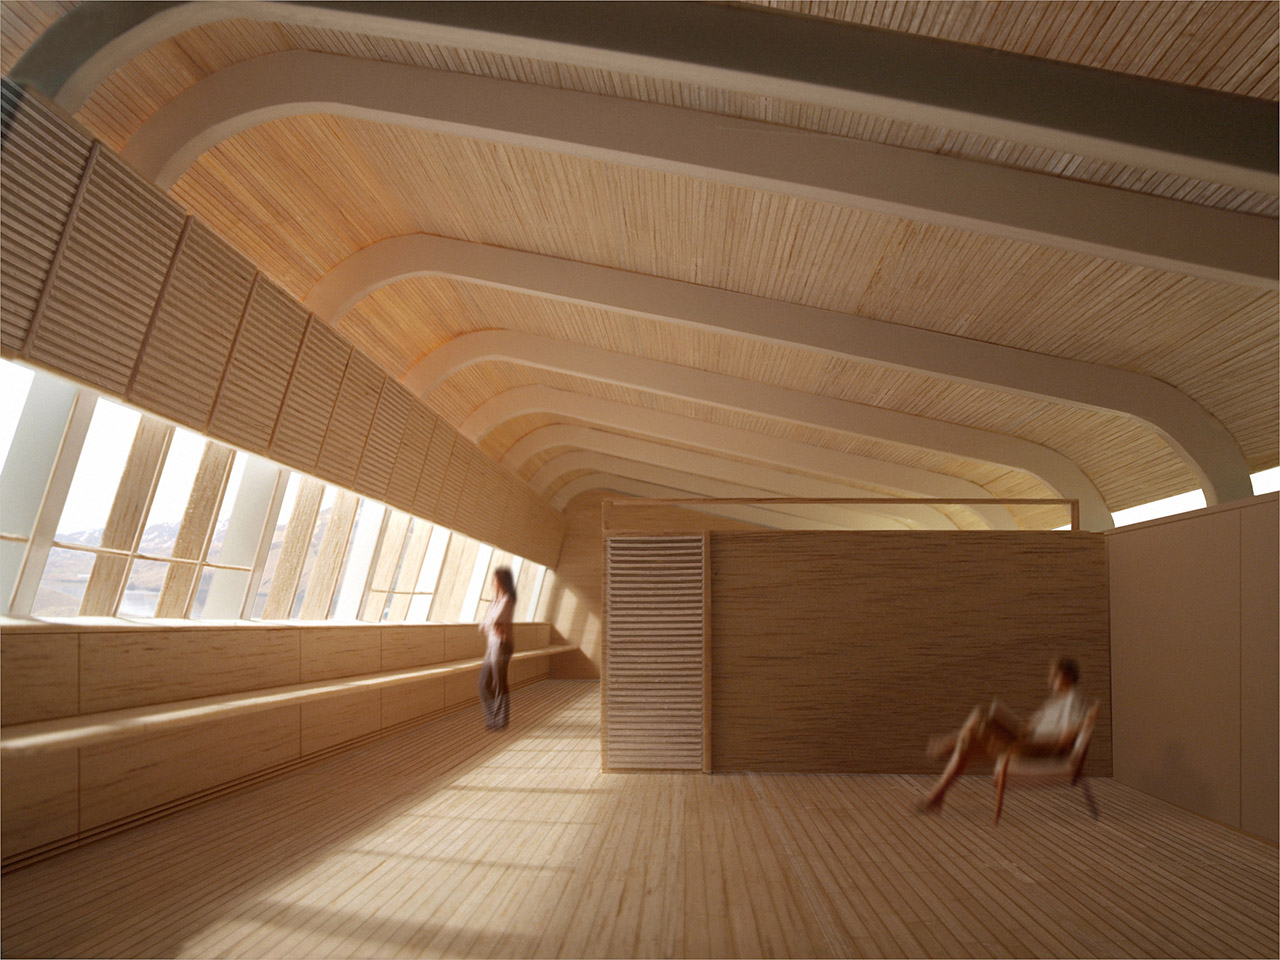 Interior of Finnesko 13 by Taller Abierto, winner of the Living Aleutian Home Design Competition 2012